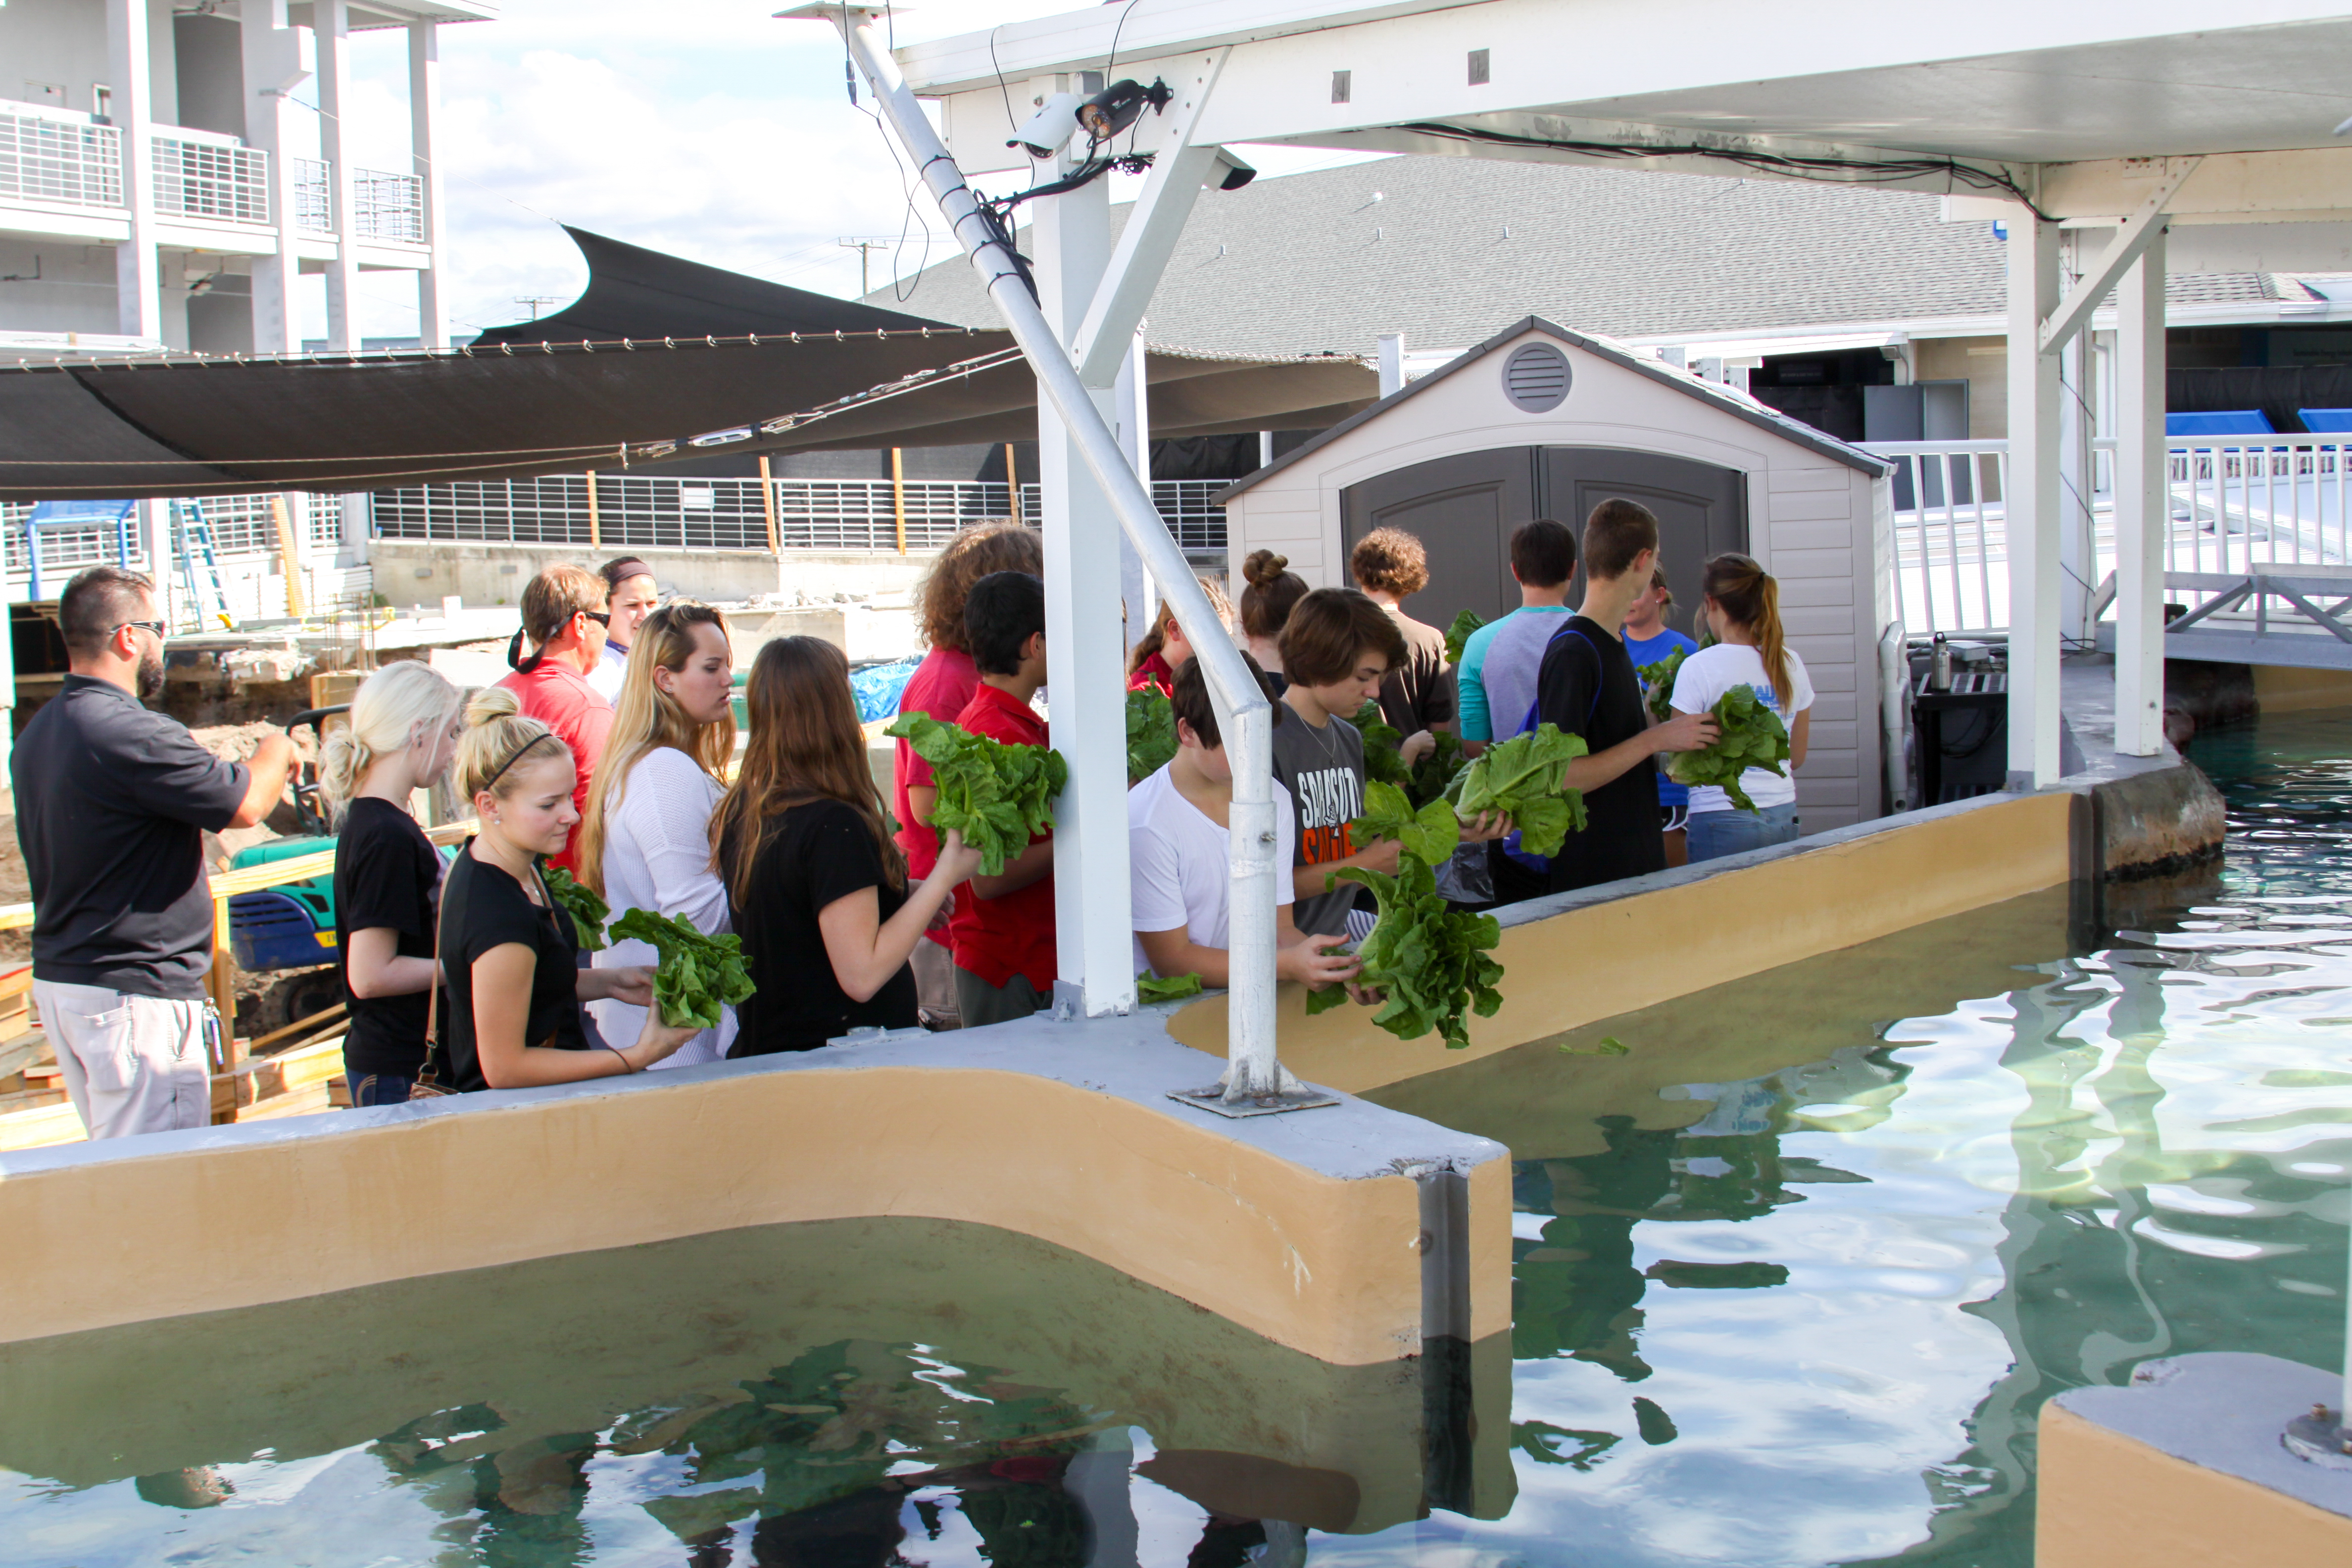 Students From Sarasota High School Visited Mote Marine Laboratory And Aquarium Tuesday Dec 1 To Deliver Freshly Grown Lettuce Their Garden